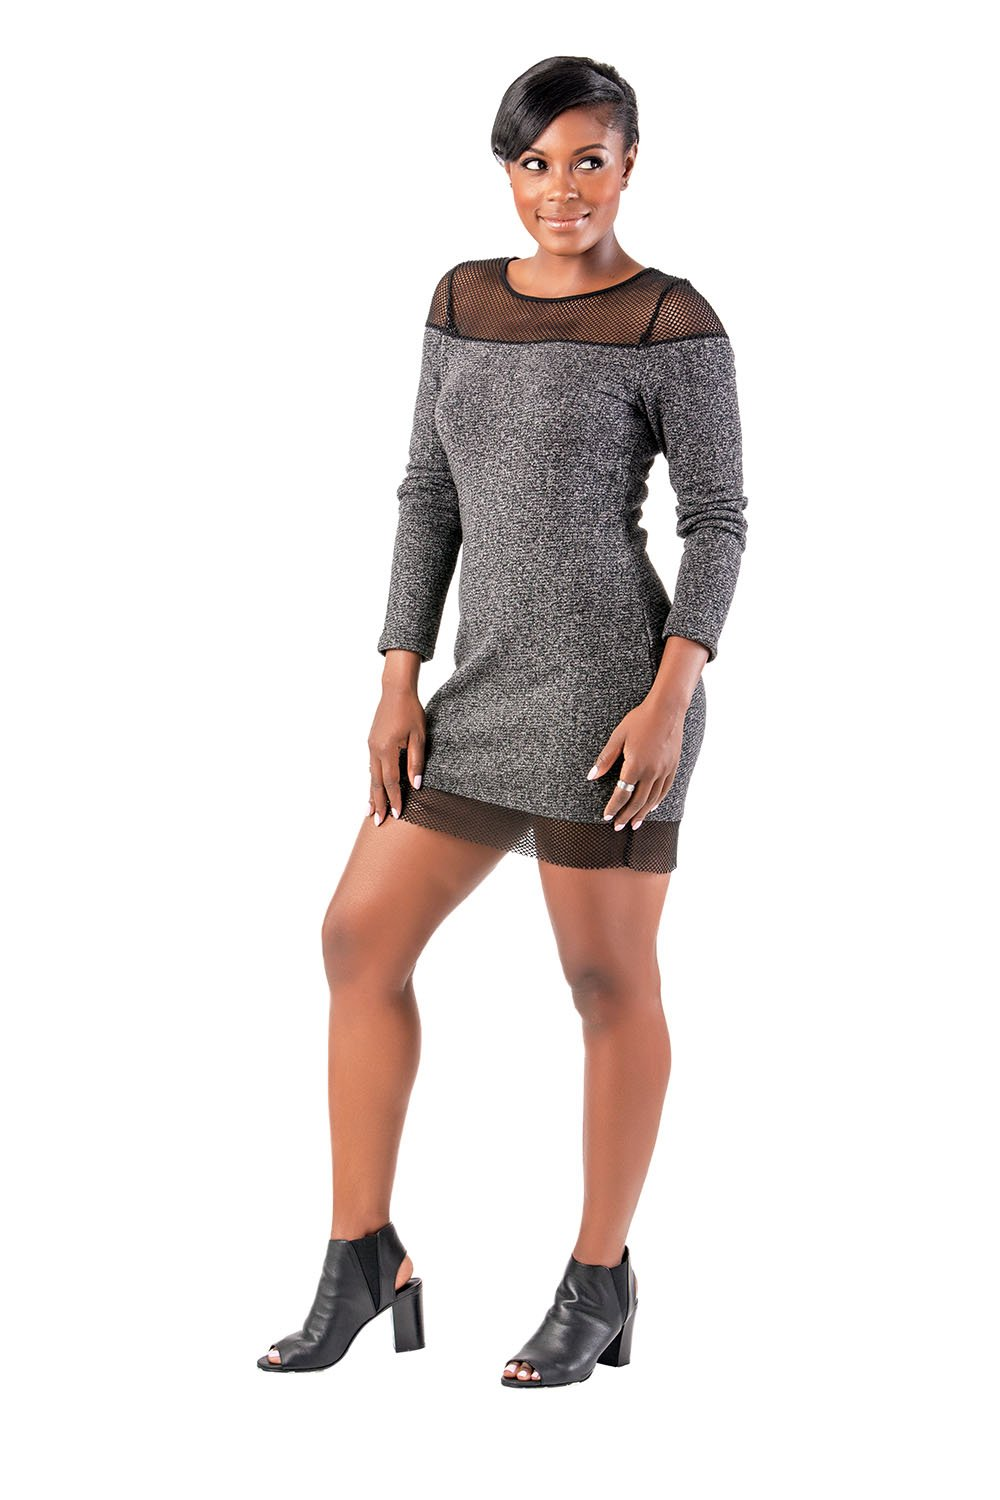 Poetic Justice Curvy Women's Black Knit French Terry Mesh Long Sleeve Dress